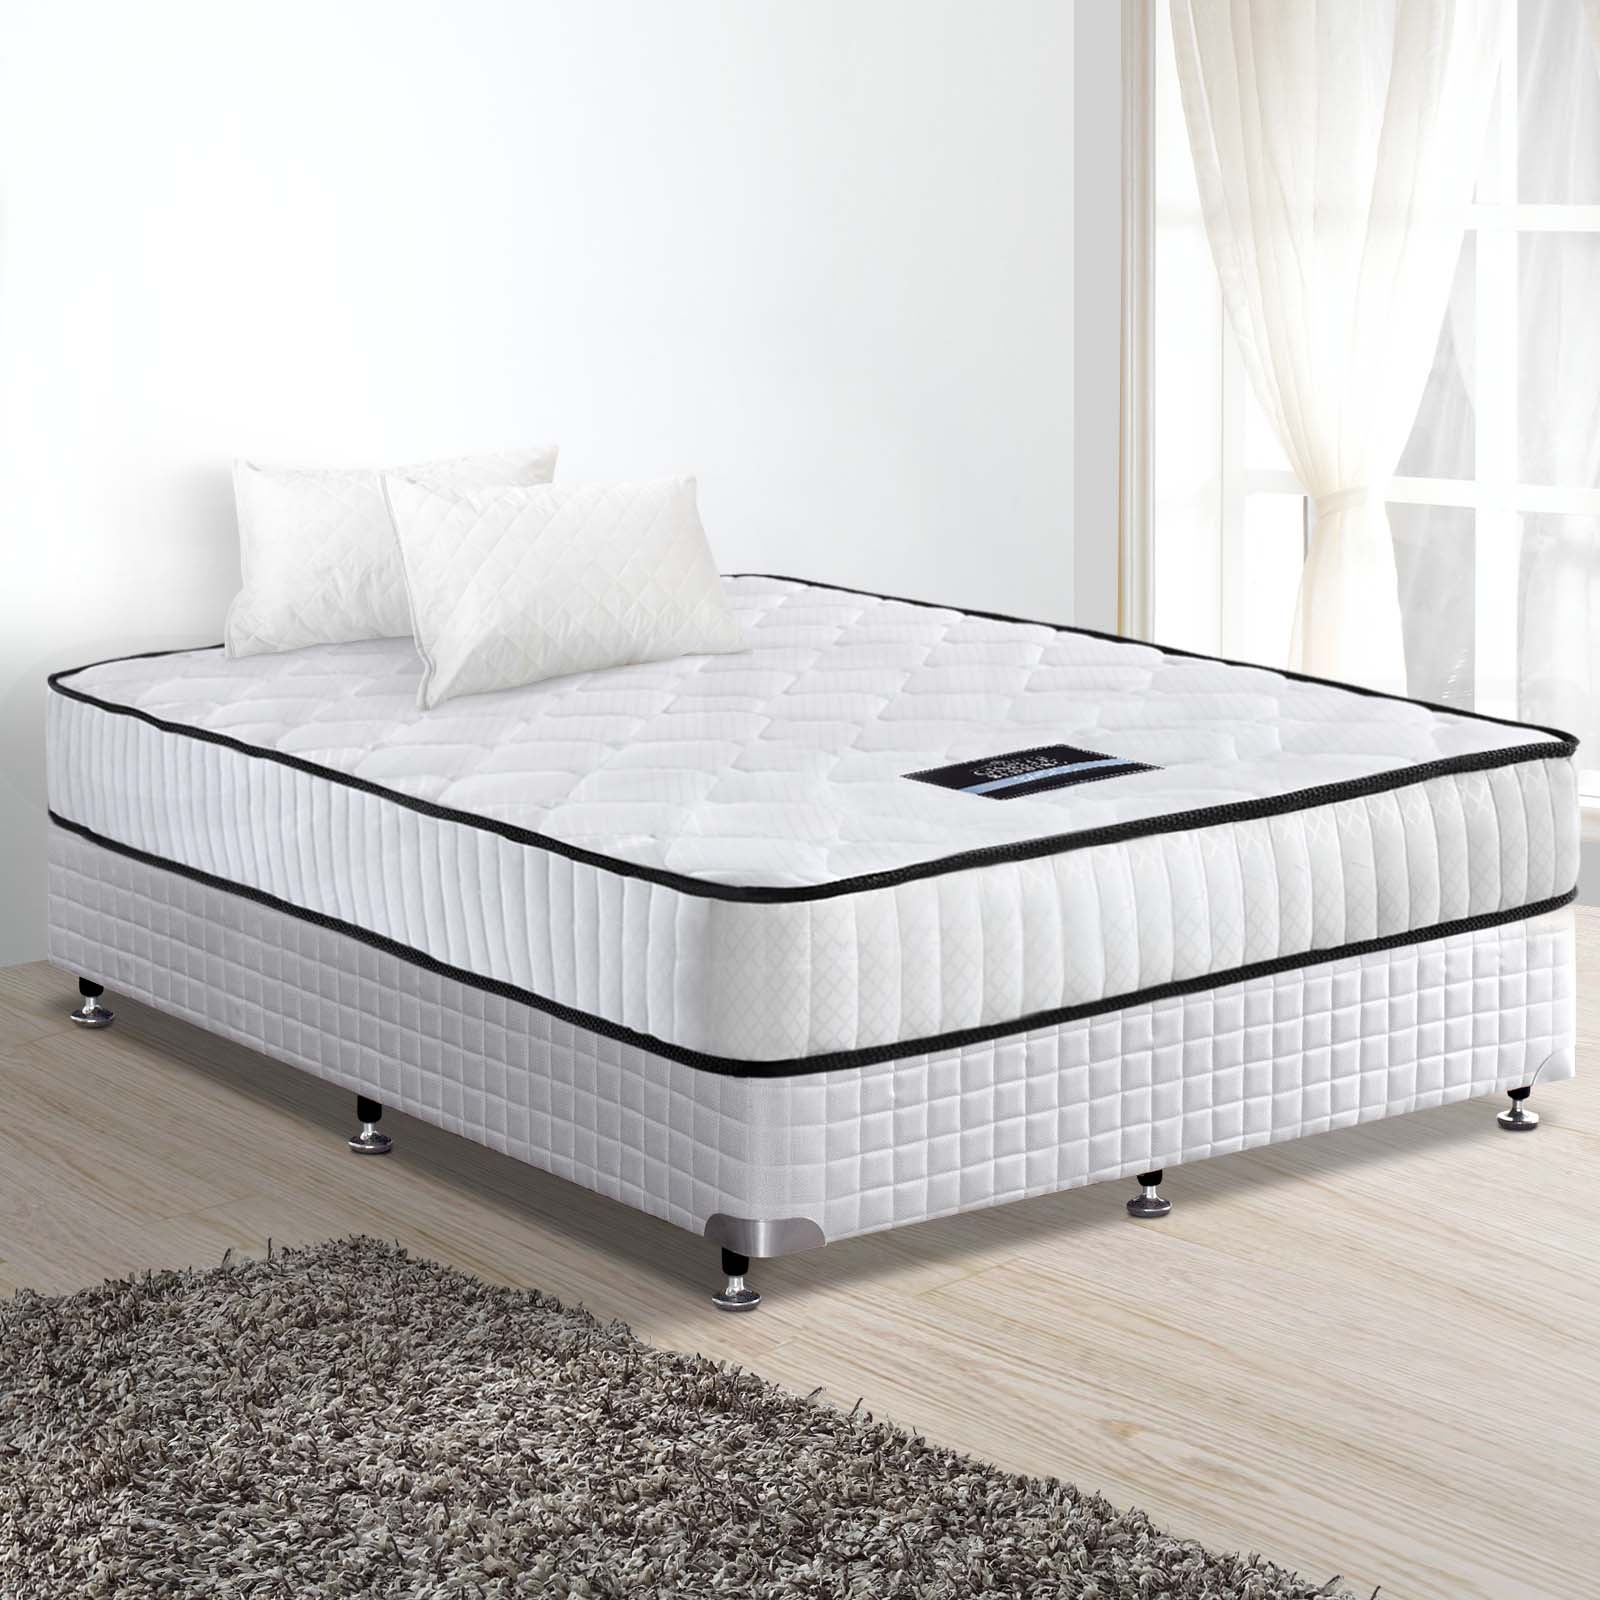 Queen Double King Single Mattress Bed Size Pocket Spring